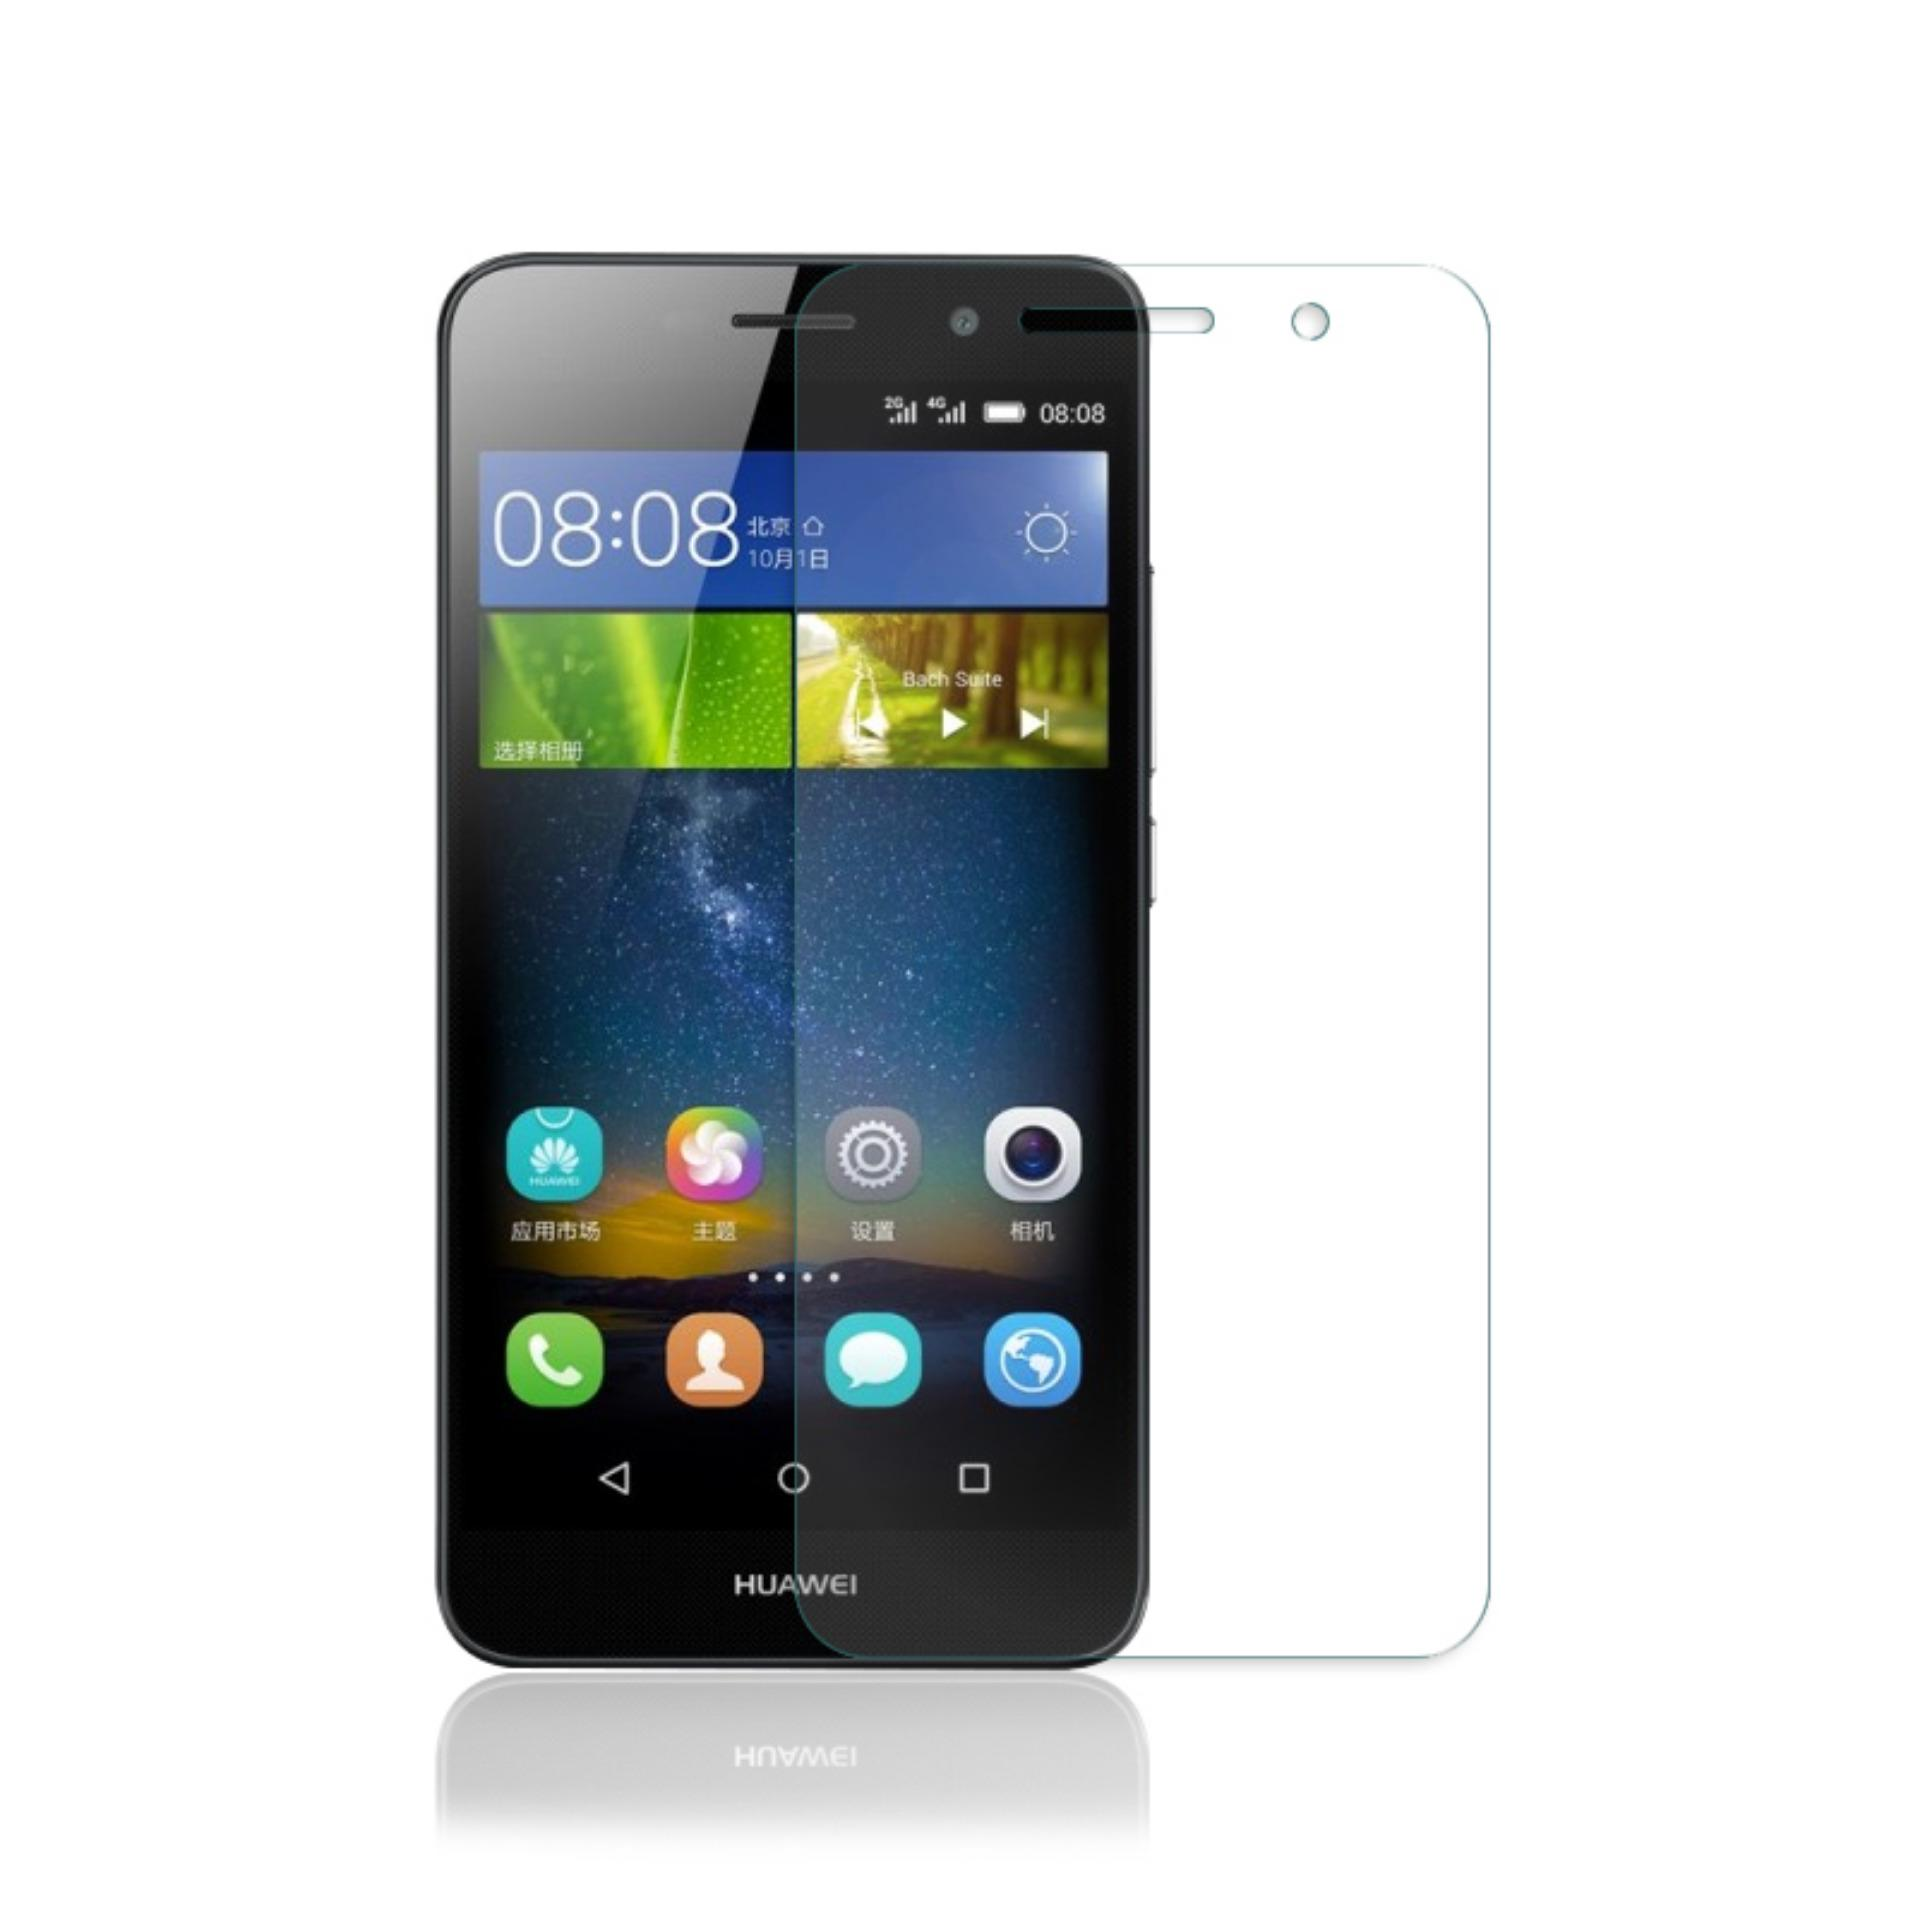 Vn Huawei Ascend Y3iii / Y3 3 / Y3 (2017) Tempered Glass 9H Screen Protector 0.32mm - Transparan